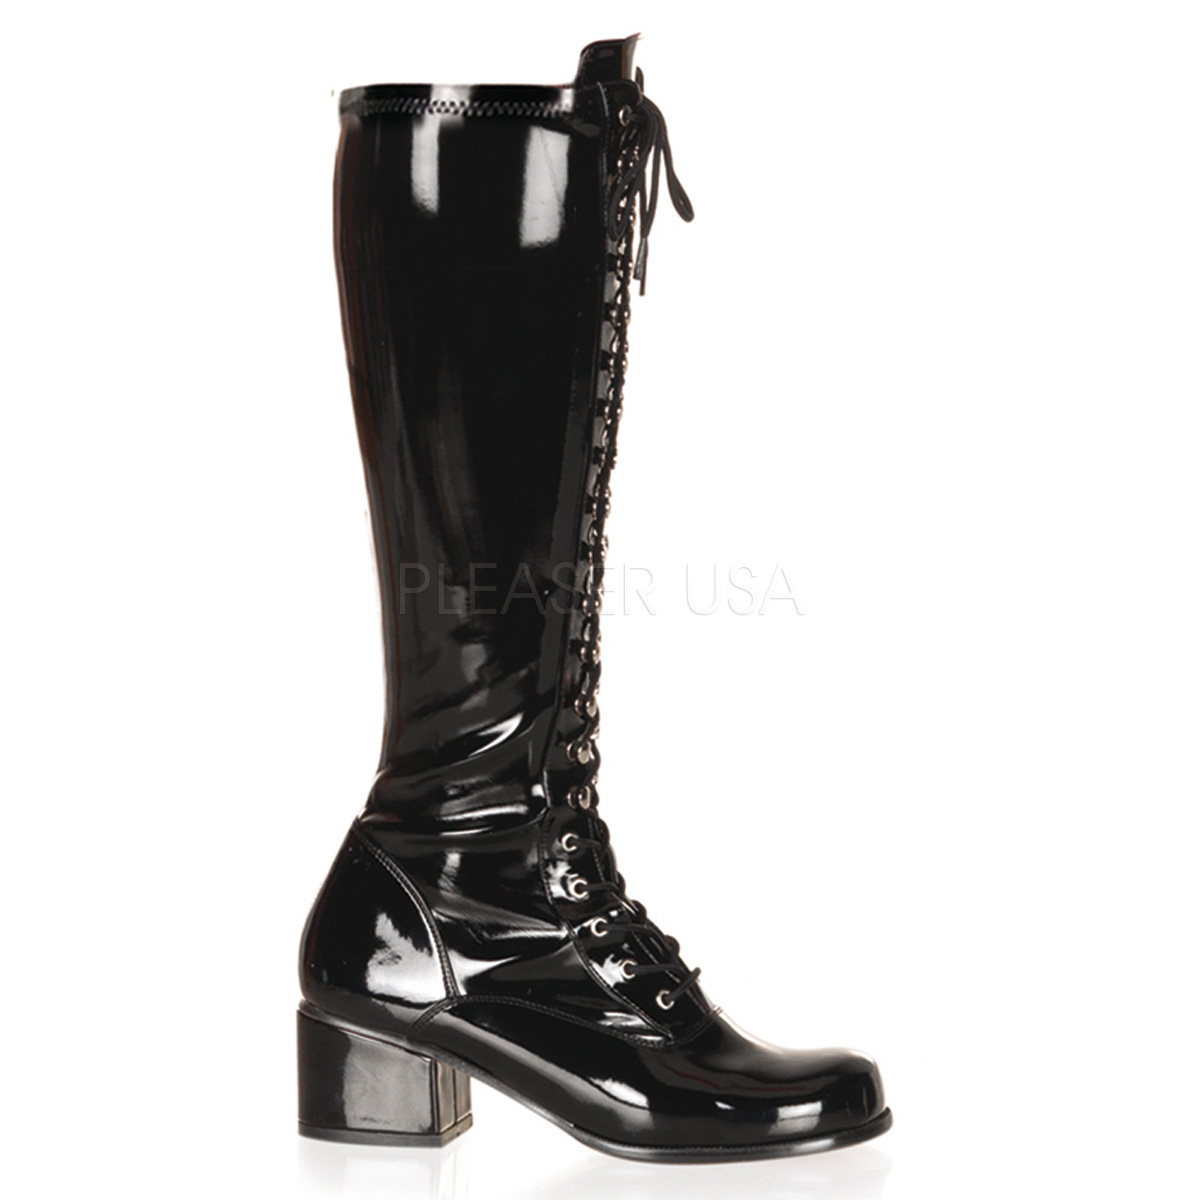 "FUNTASMA Retro-302 Series 2"" Heel Knee-High Boots - Black Str Patent"